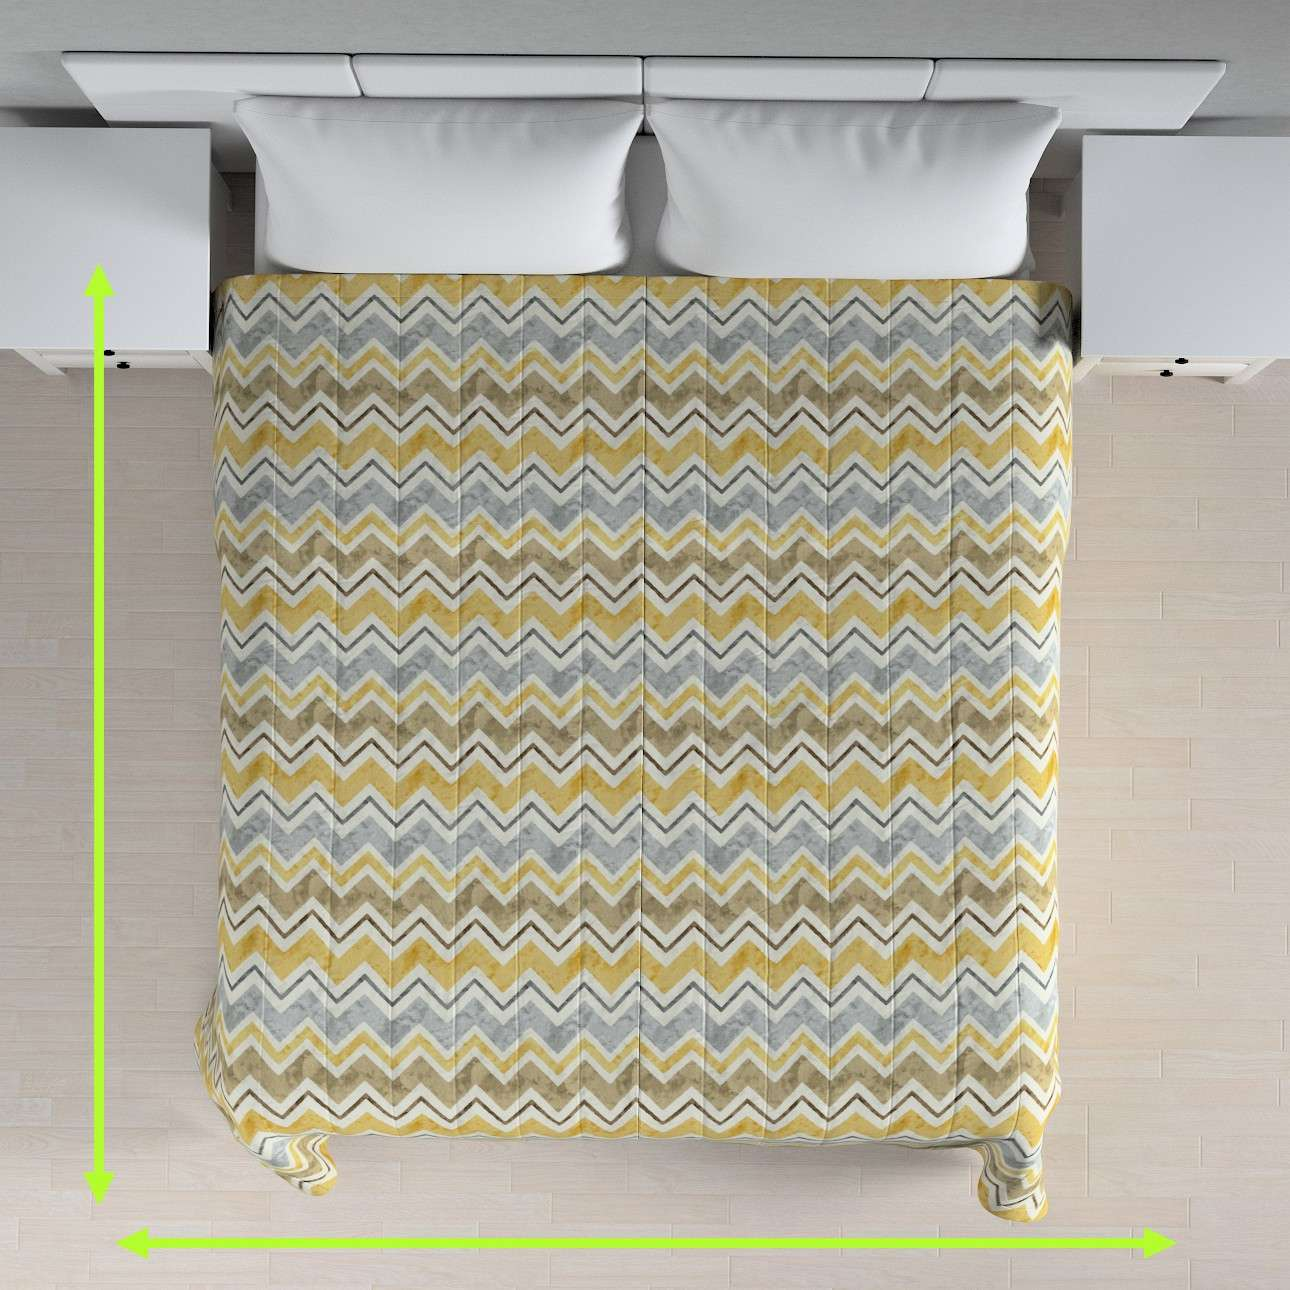 Quilted throw (vertical quilt pattern) in collection Acapulco, fabric: 141-39